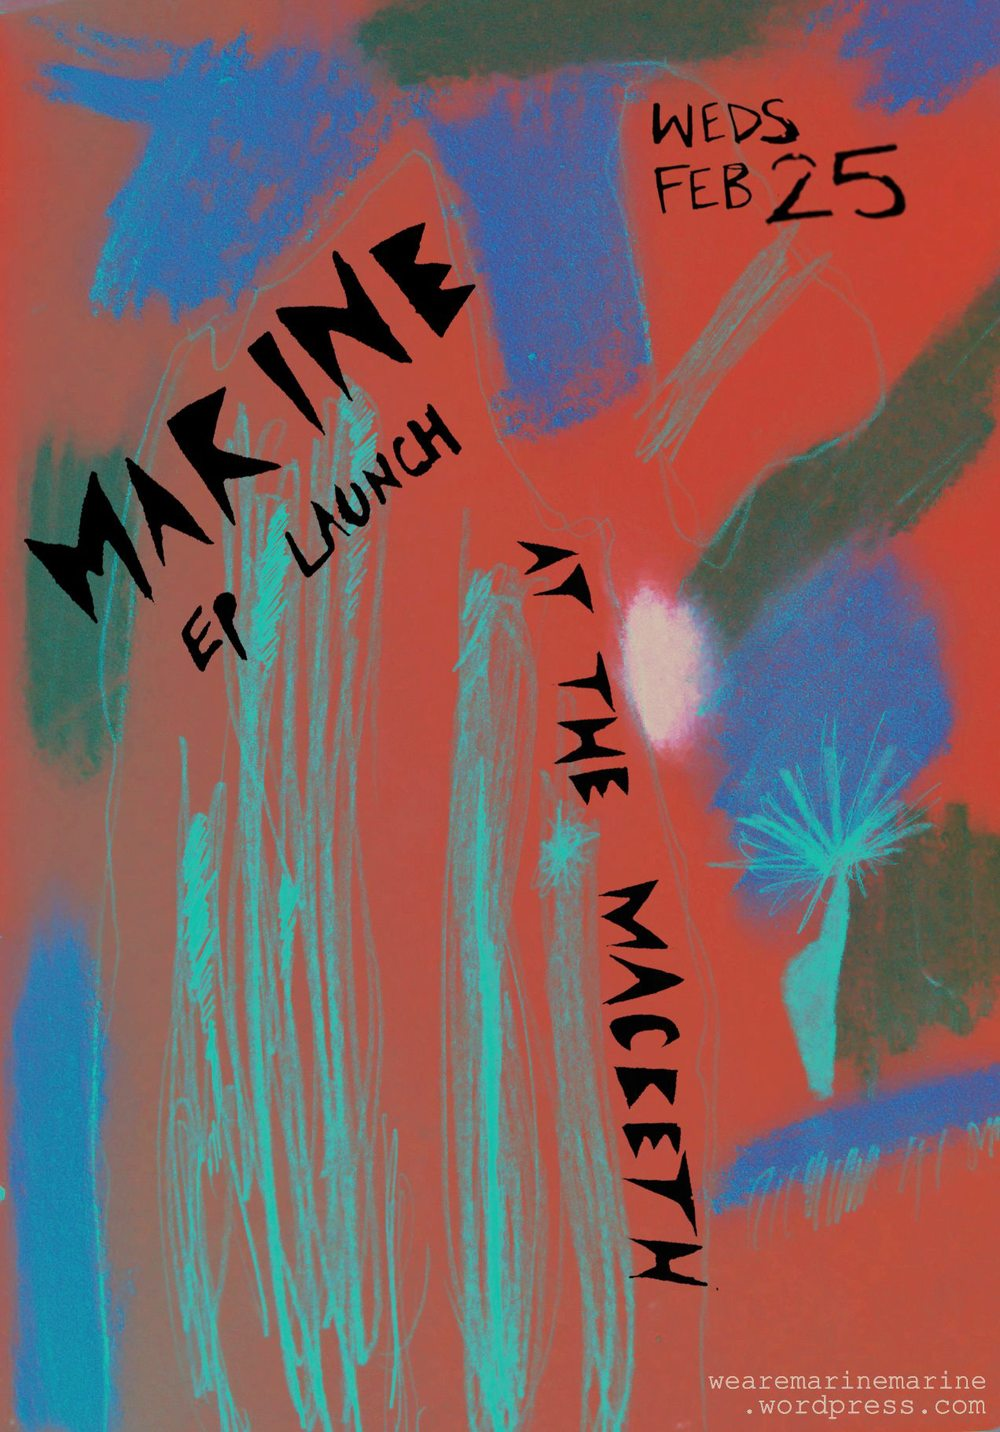 We are super excited to announce that M A R I N E's debut EP is going to be released on February 25th 2015 and we're going to have a big party to celebrate! Put the date in your diary now!